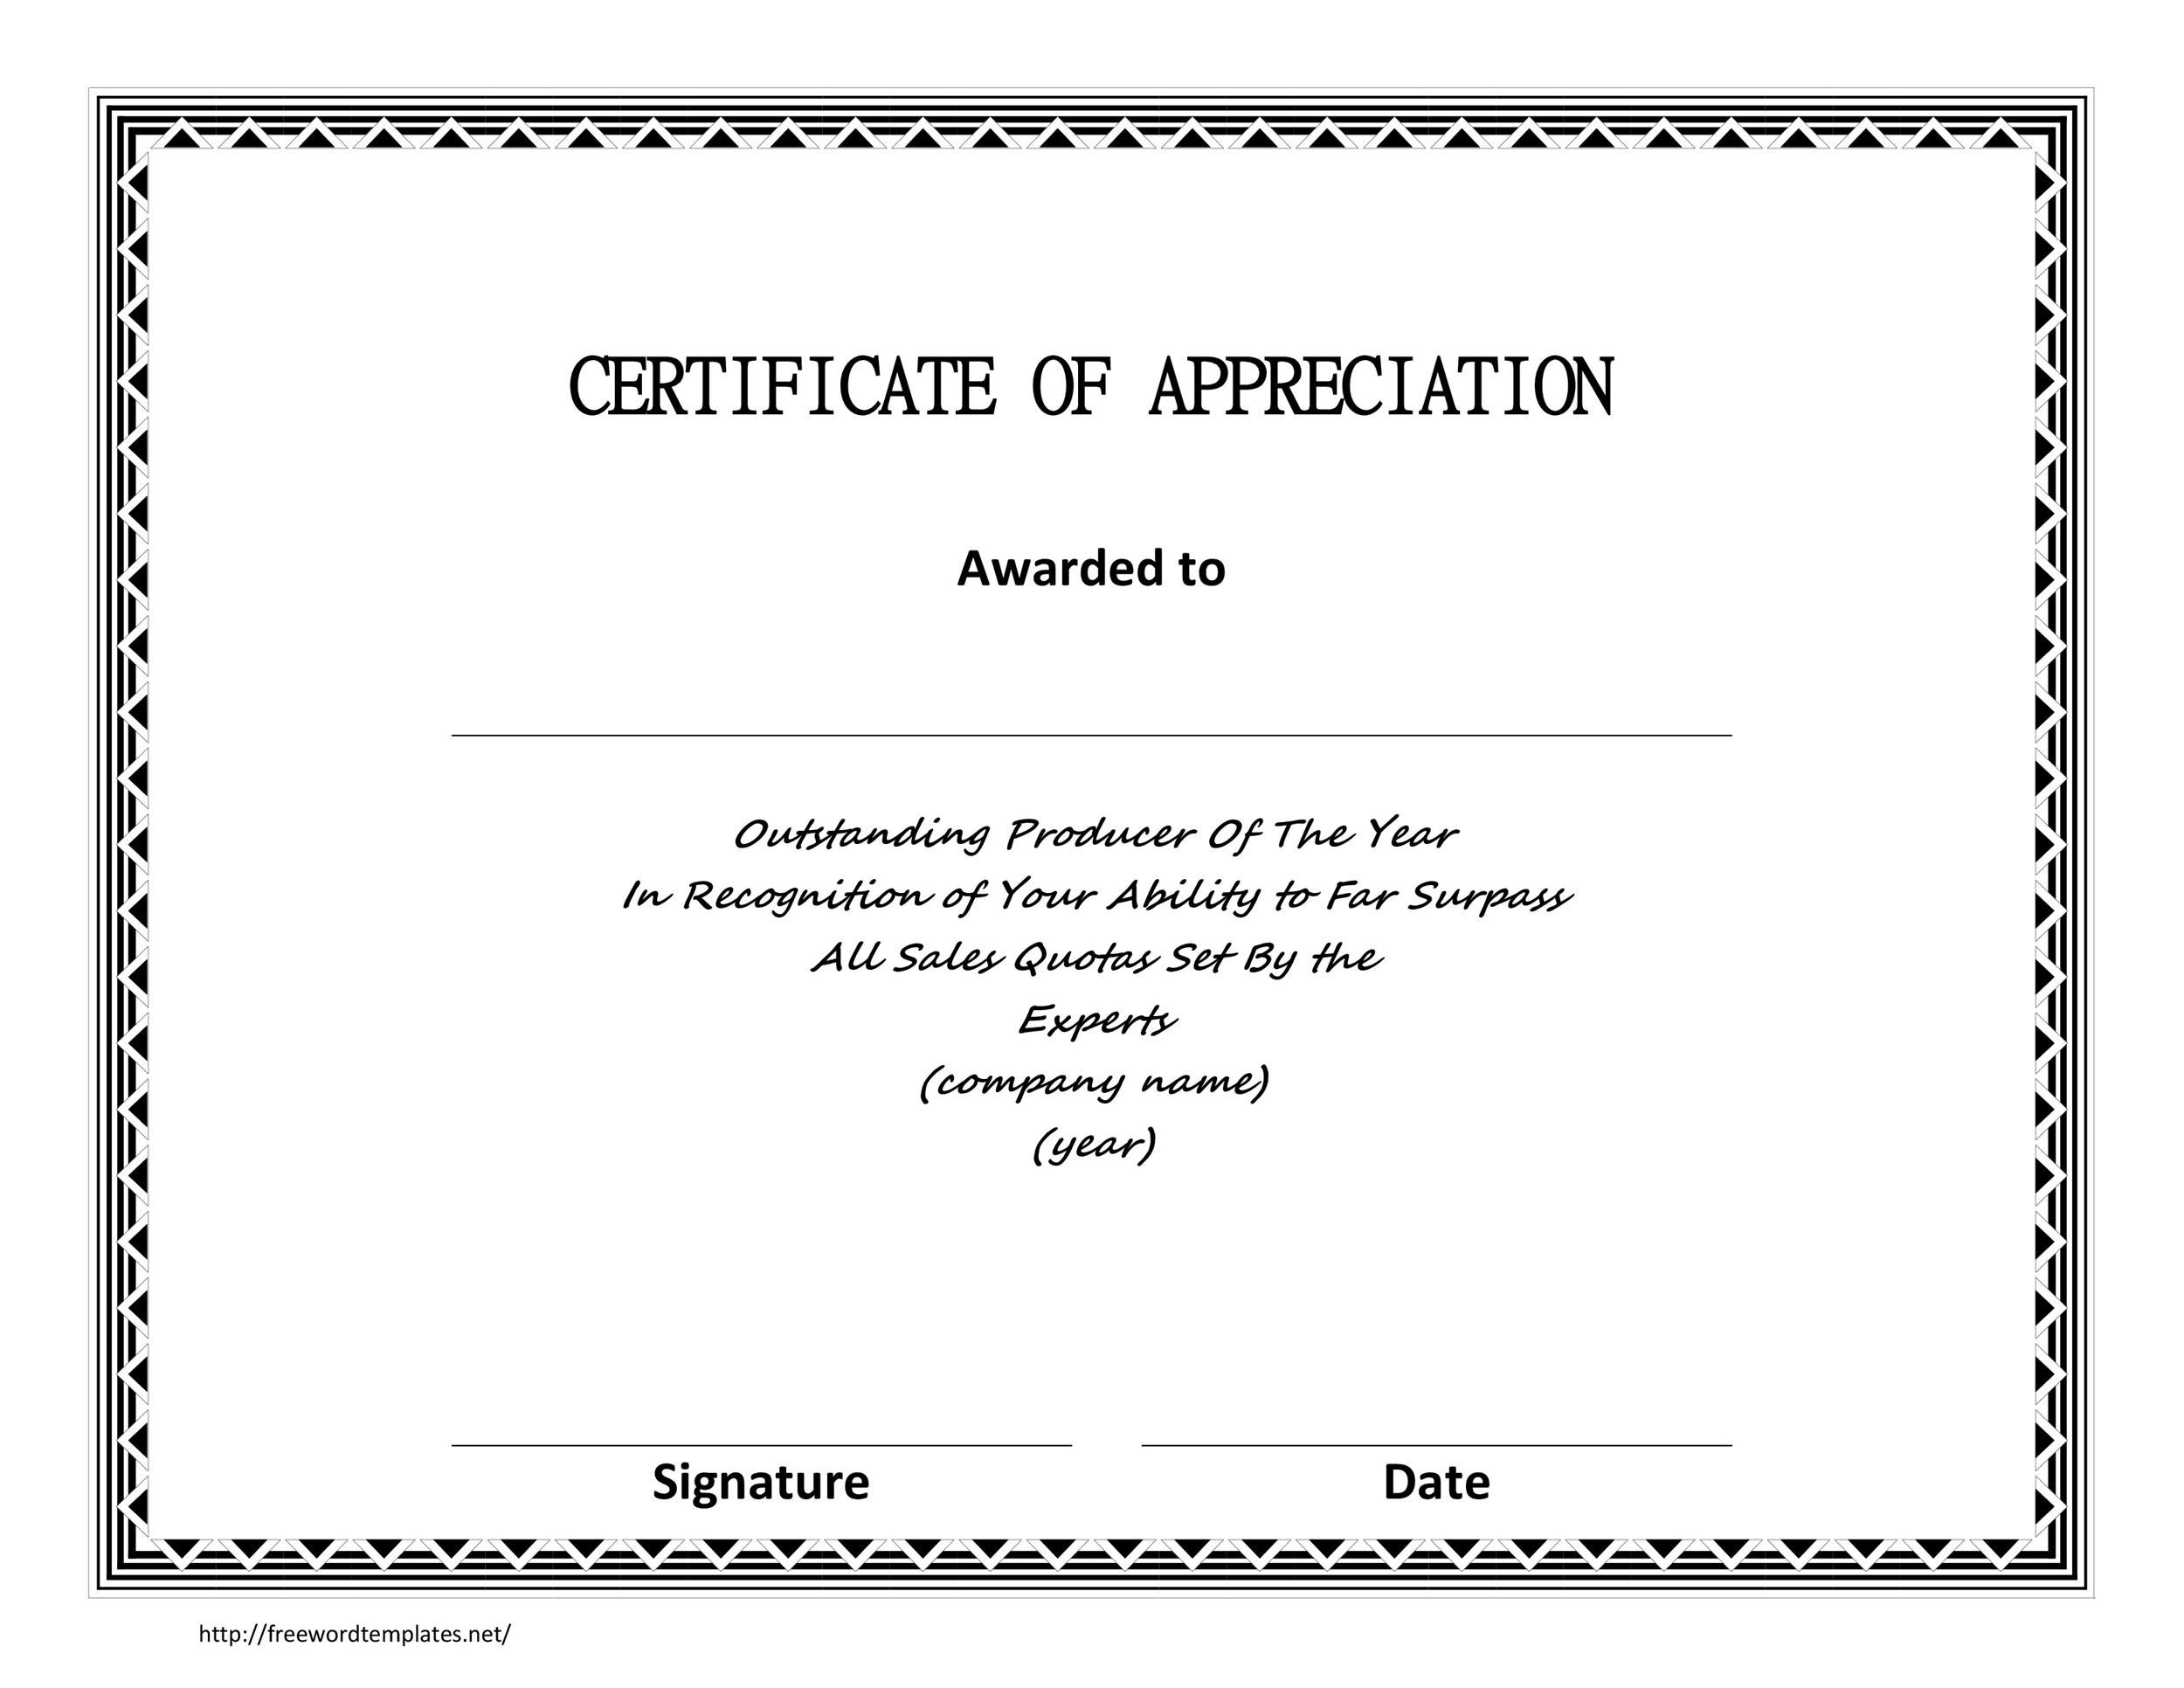 Free Certificate Of Appreciation Templates And Letters